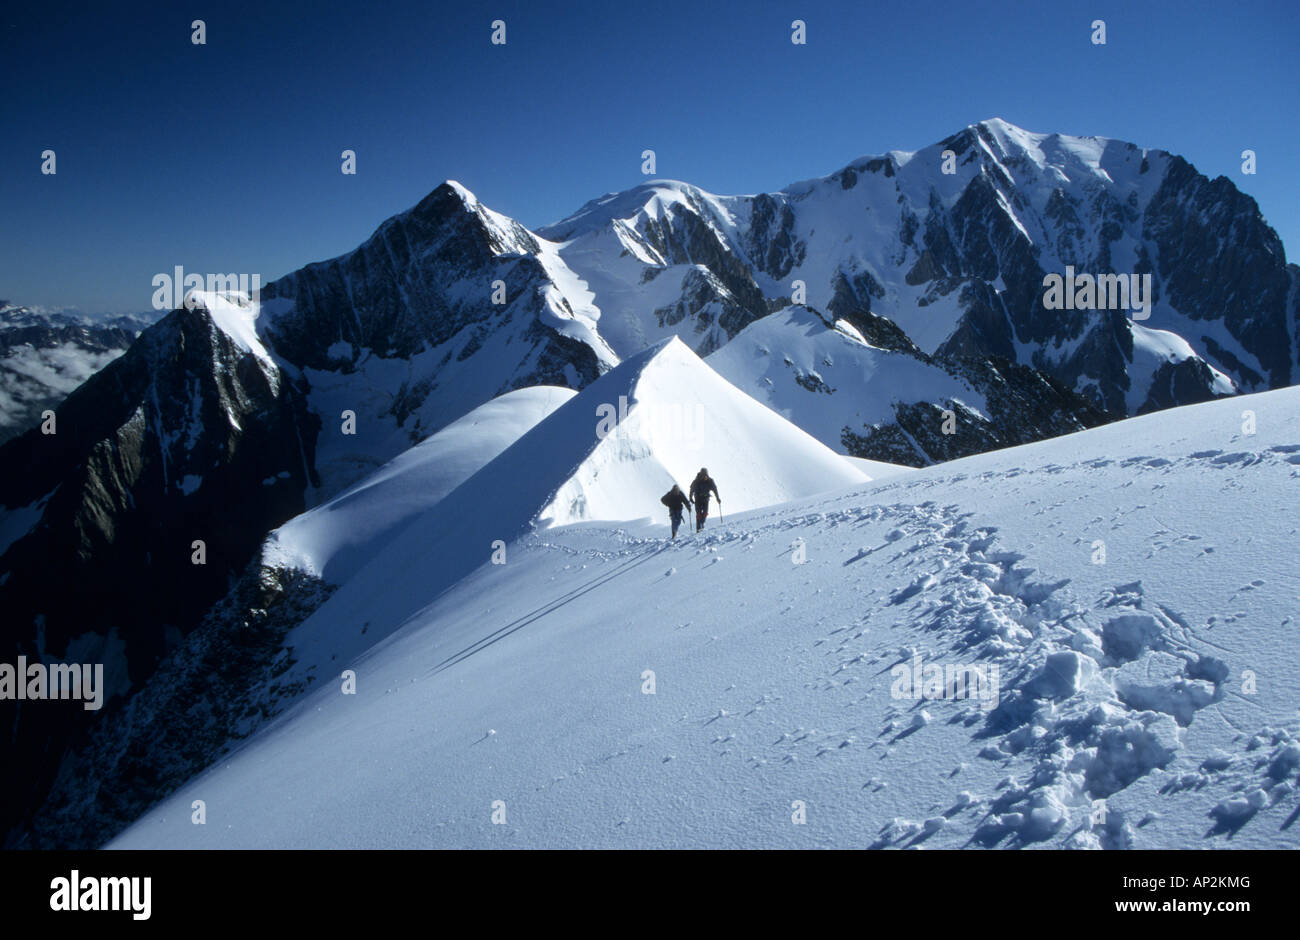 mountaineerers at ridge of Domes de Miage with Mont Blanc in background, Mont Blanc range, France - Stock Image